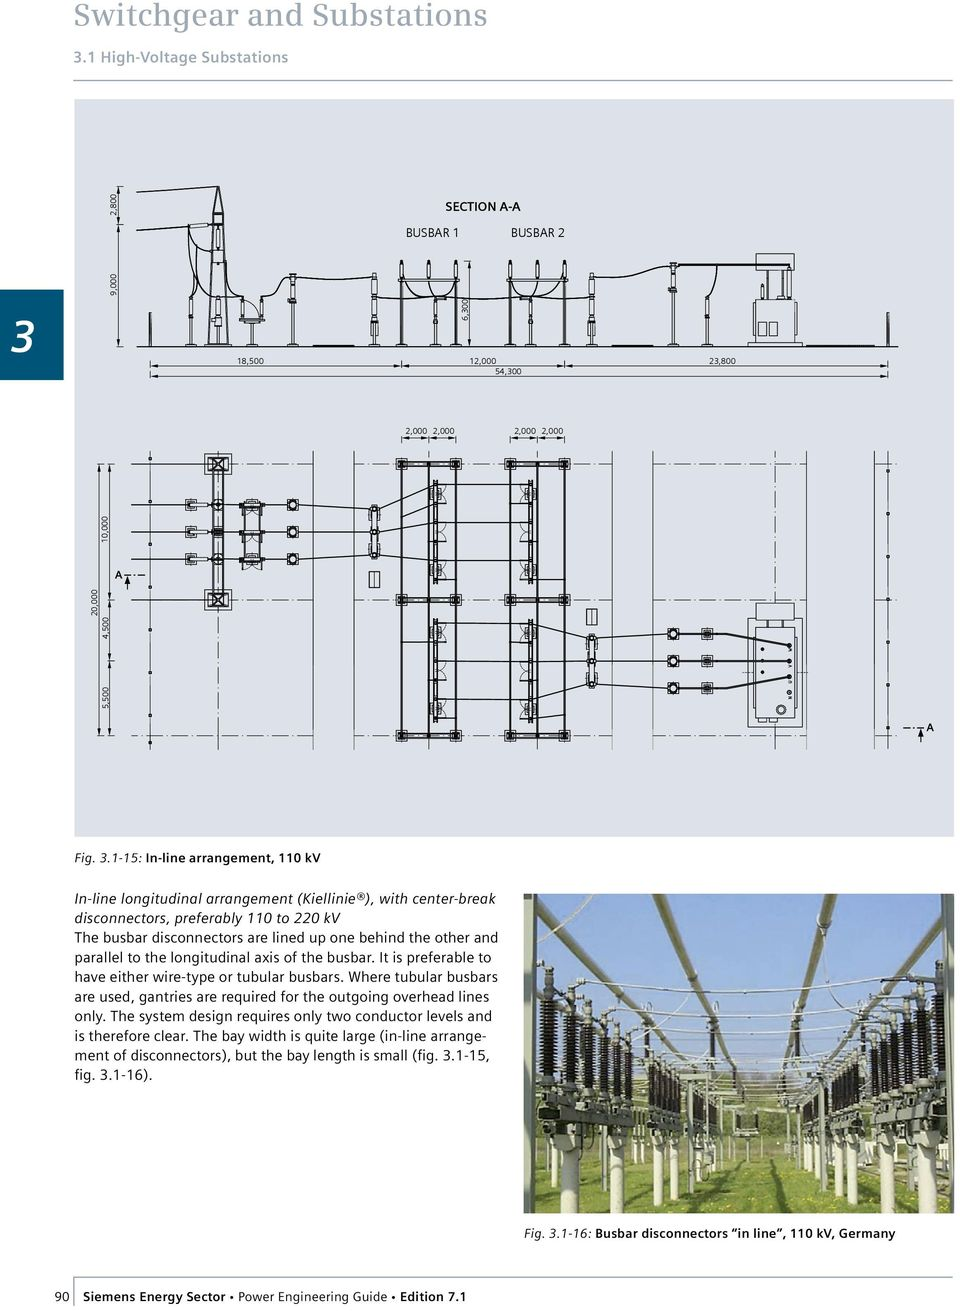 80 Siemens Energy Sector Power Engineering Guide Edition Pdf Wiring Diagram Distribution And Parallel To The Longitudinal Axis Of Busbar It Is Preferable Have Either